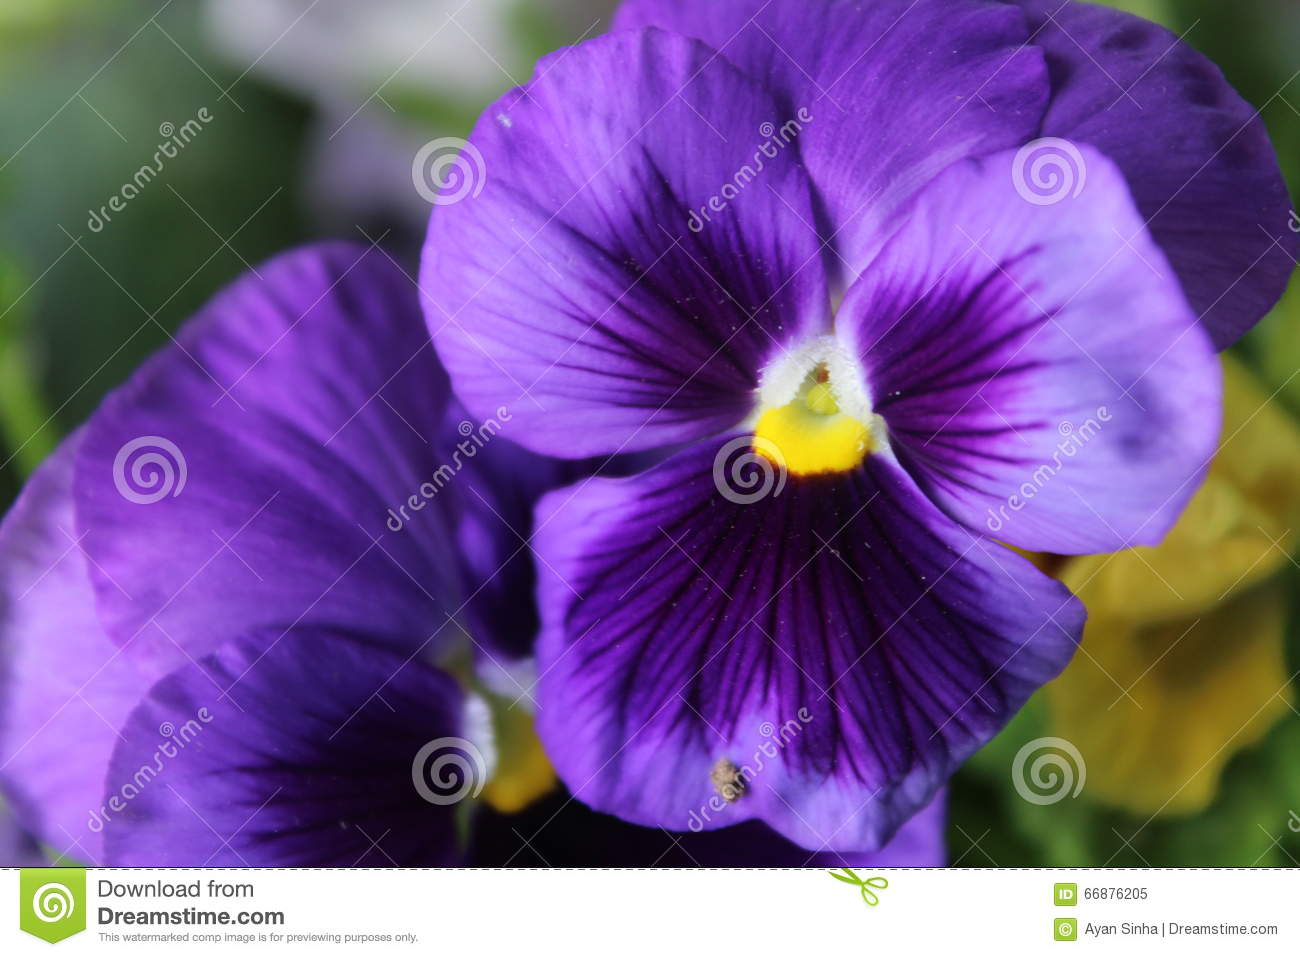 Spangy Flower stock image  Image of canon, violet, file - 66876205